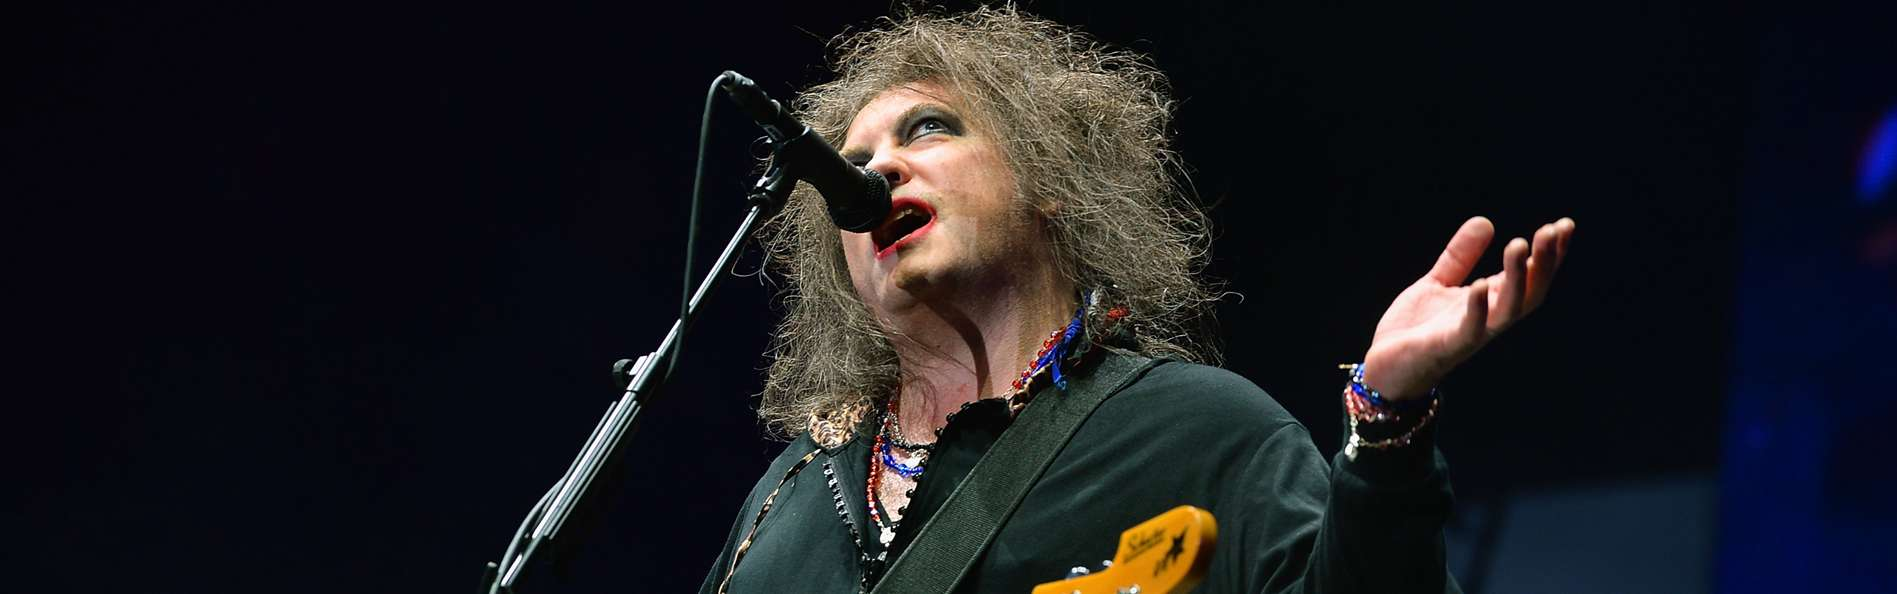 The Cure Foto: Getty Images